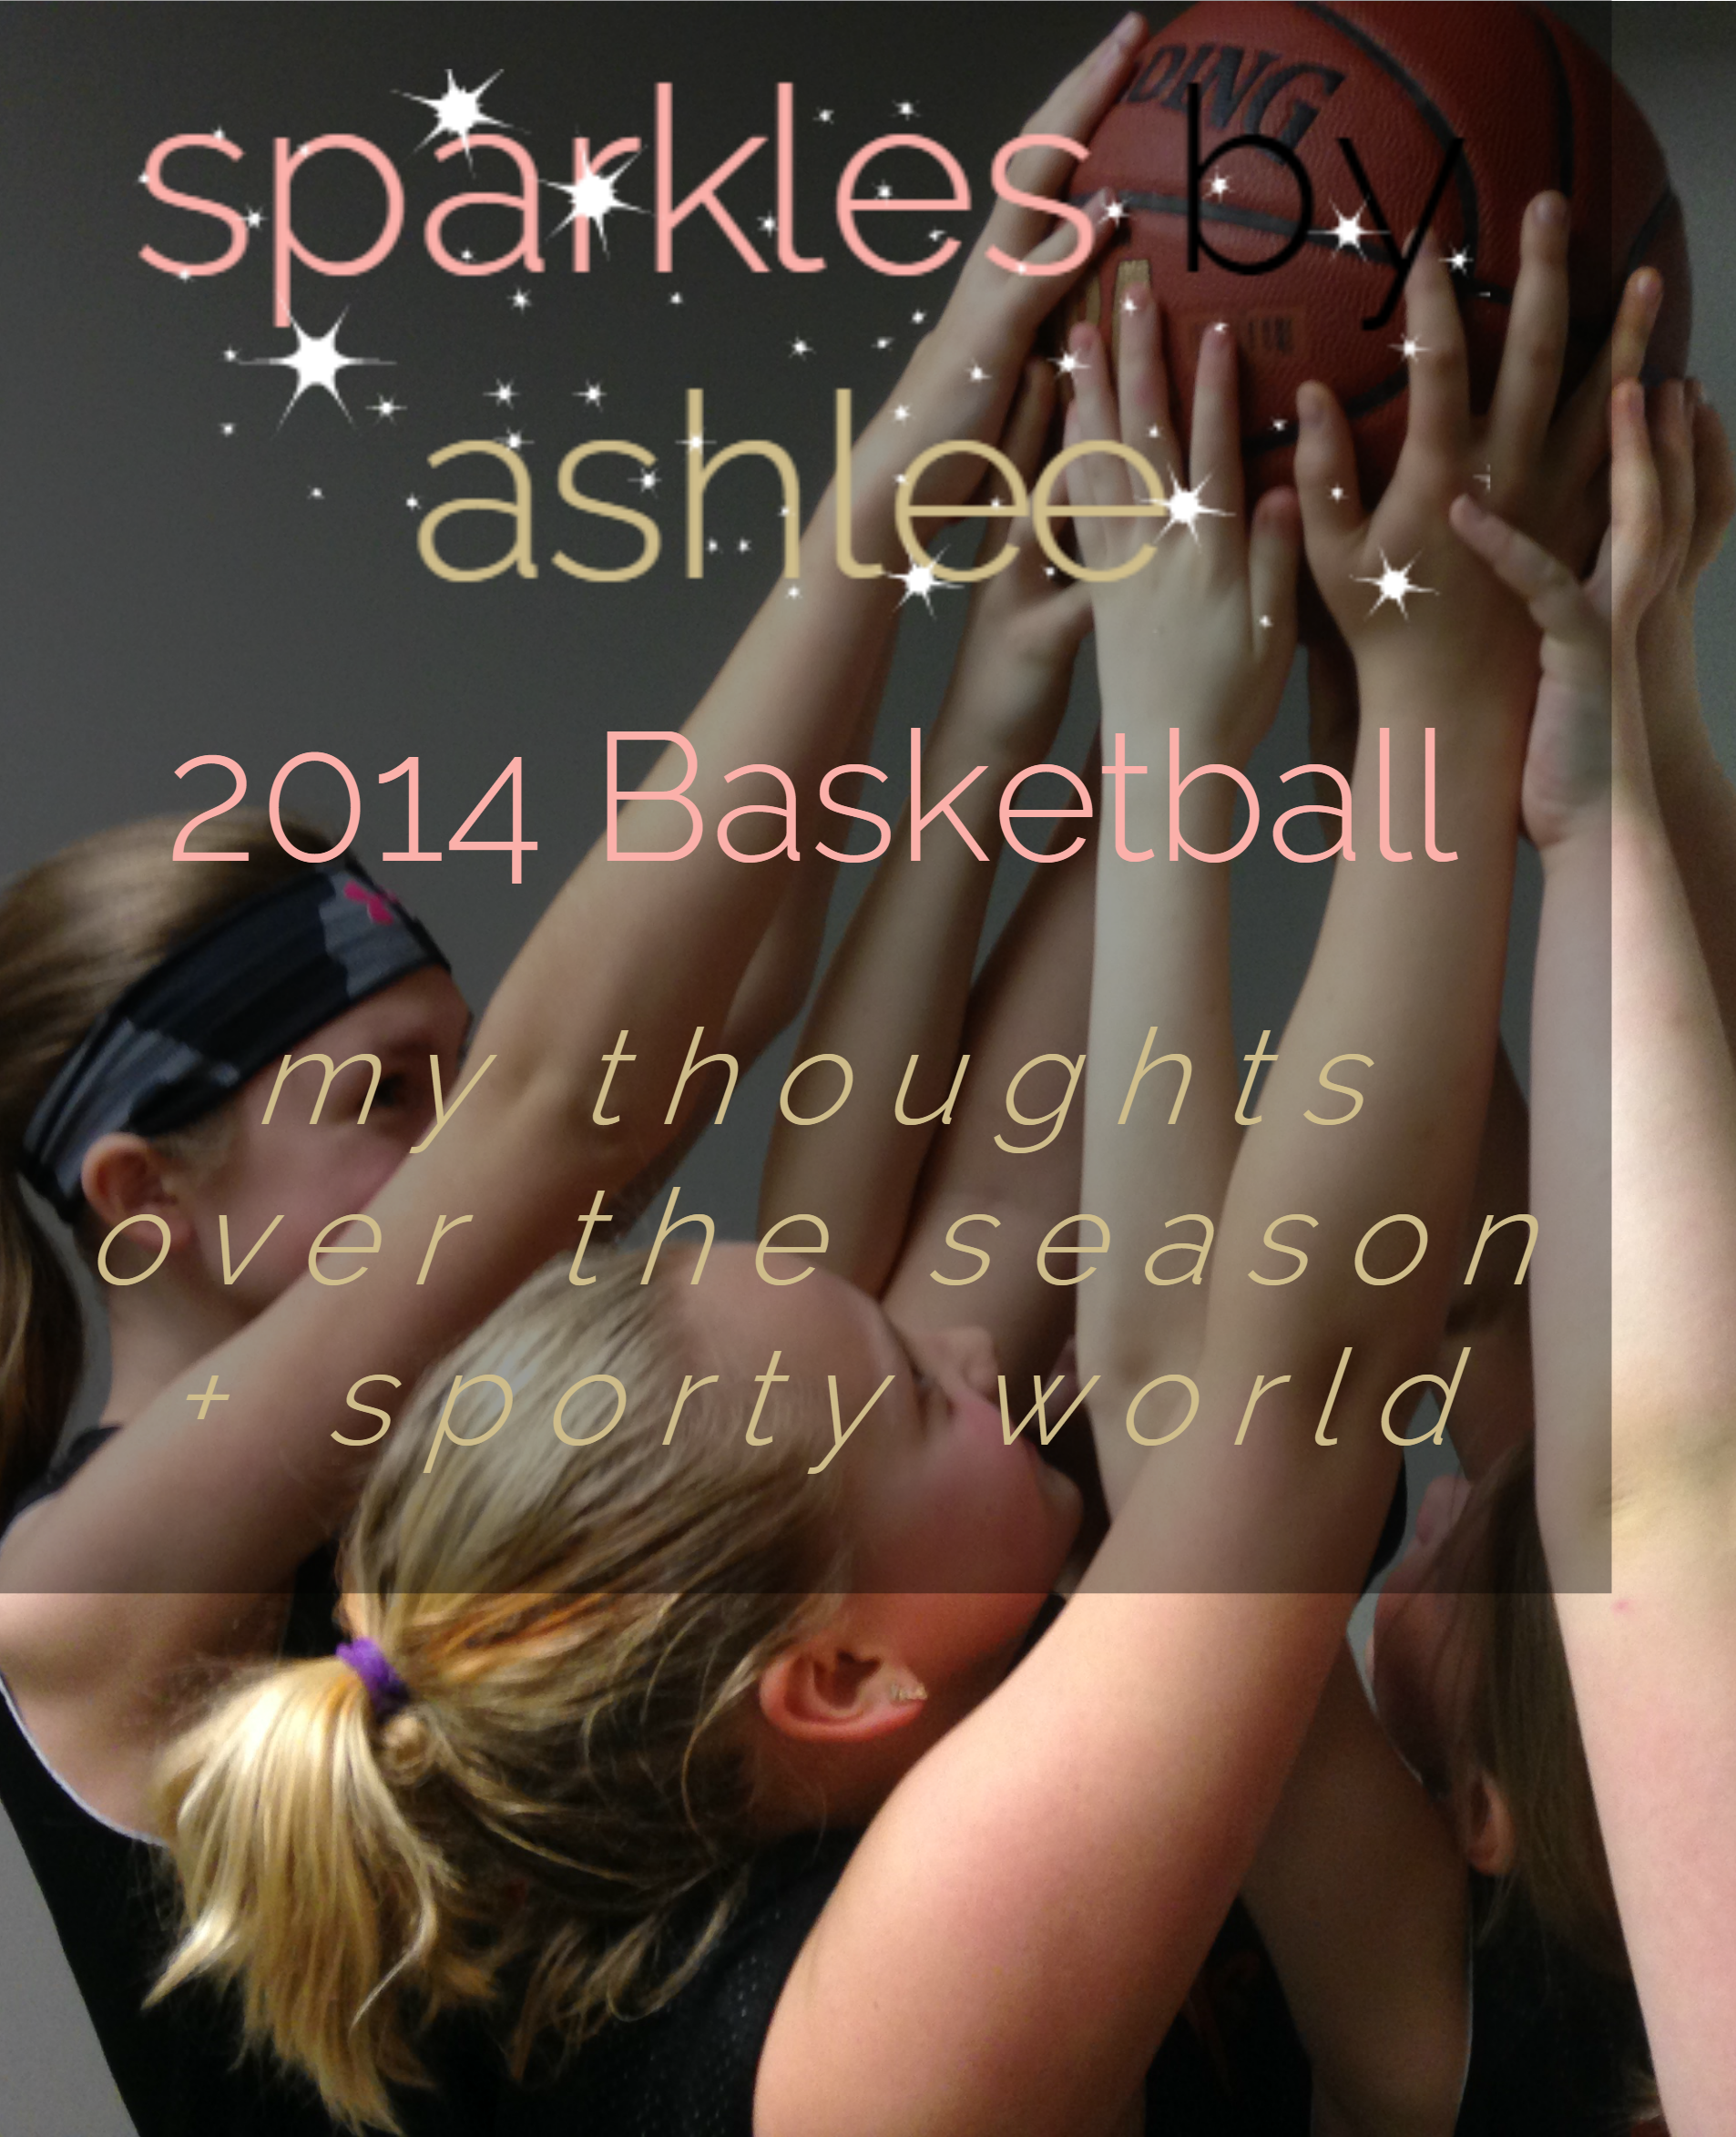 2014-Basketball-Sparkles-by-Ashlee.jpg